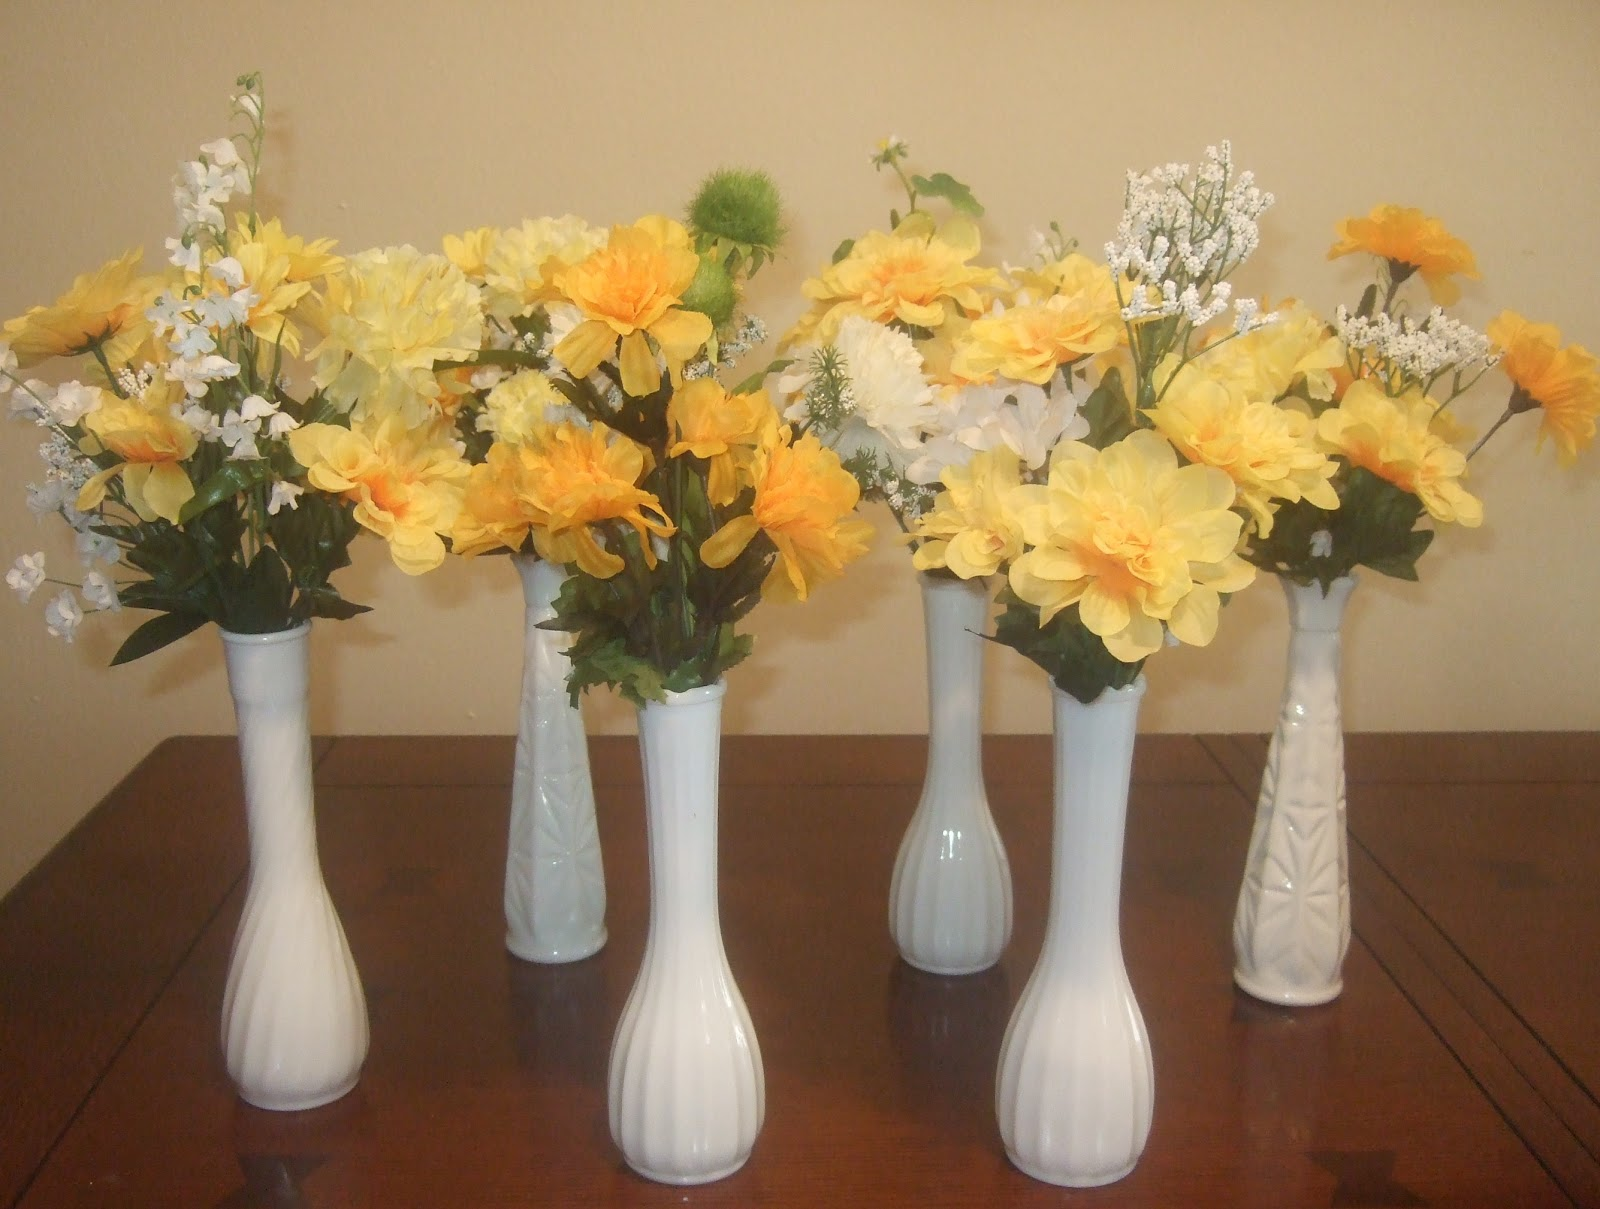 Ana silk flowers ideas milk glass wedding table milk glass bud vases to grace the tables at your vintage wedding reception or other event reviewsmspy